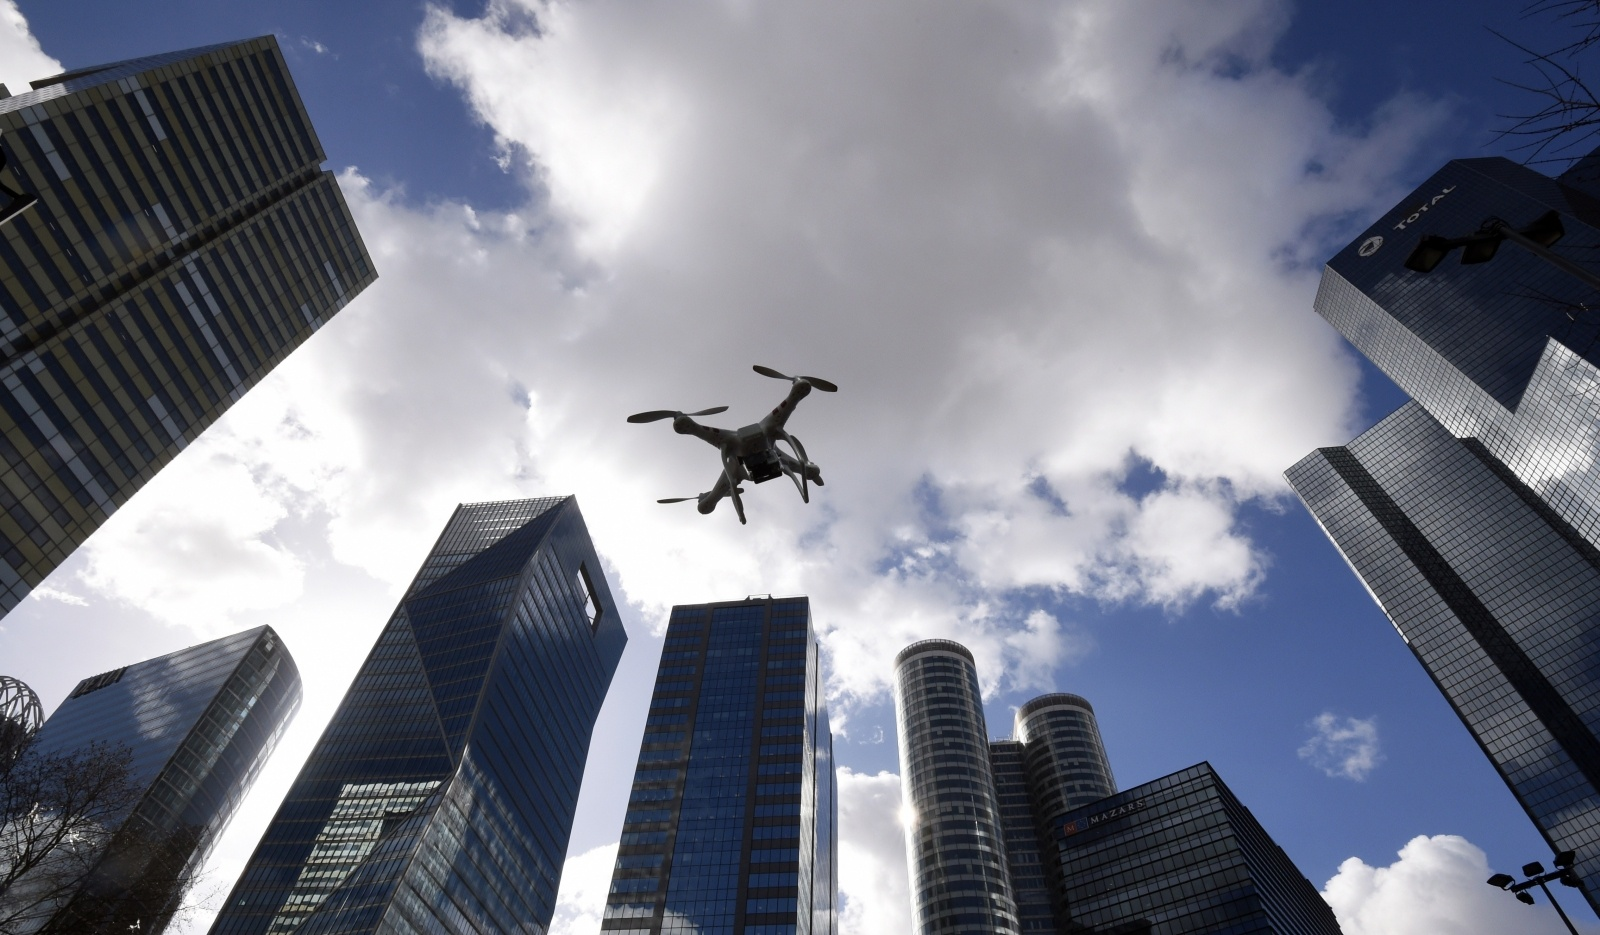 Companies and data centers should consider drones when assessing security risks